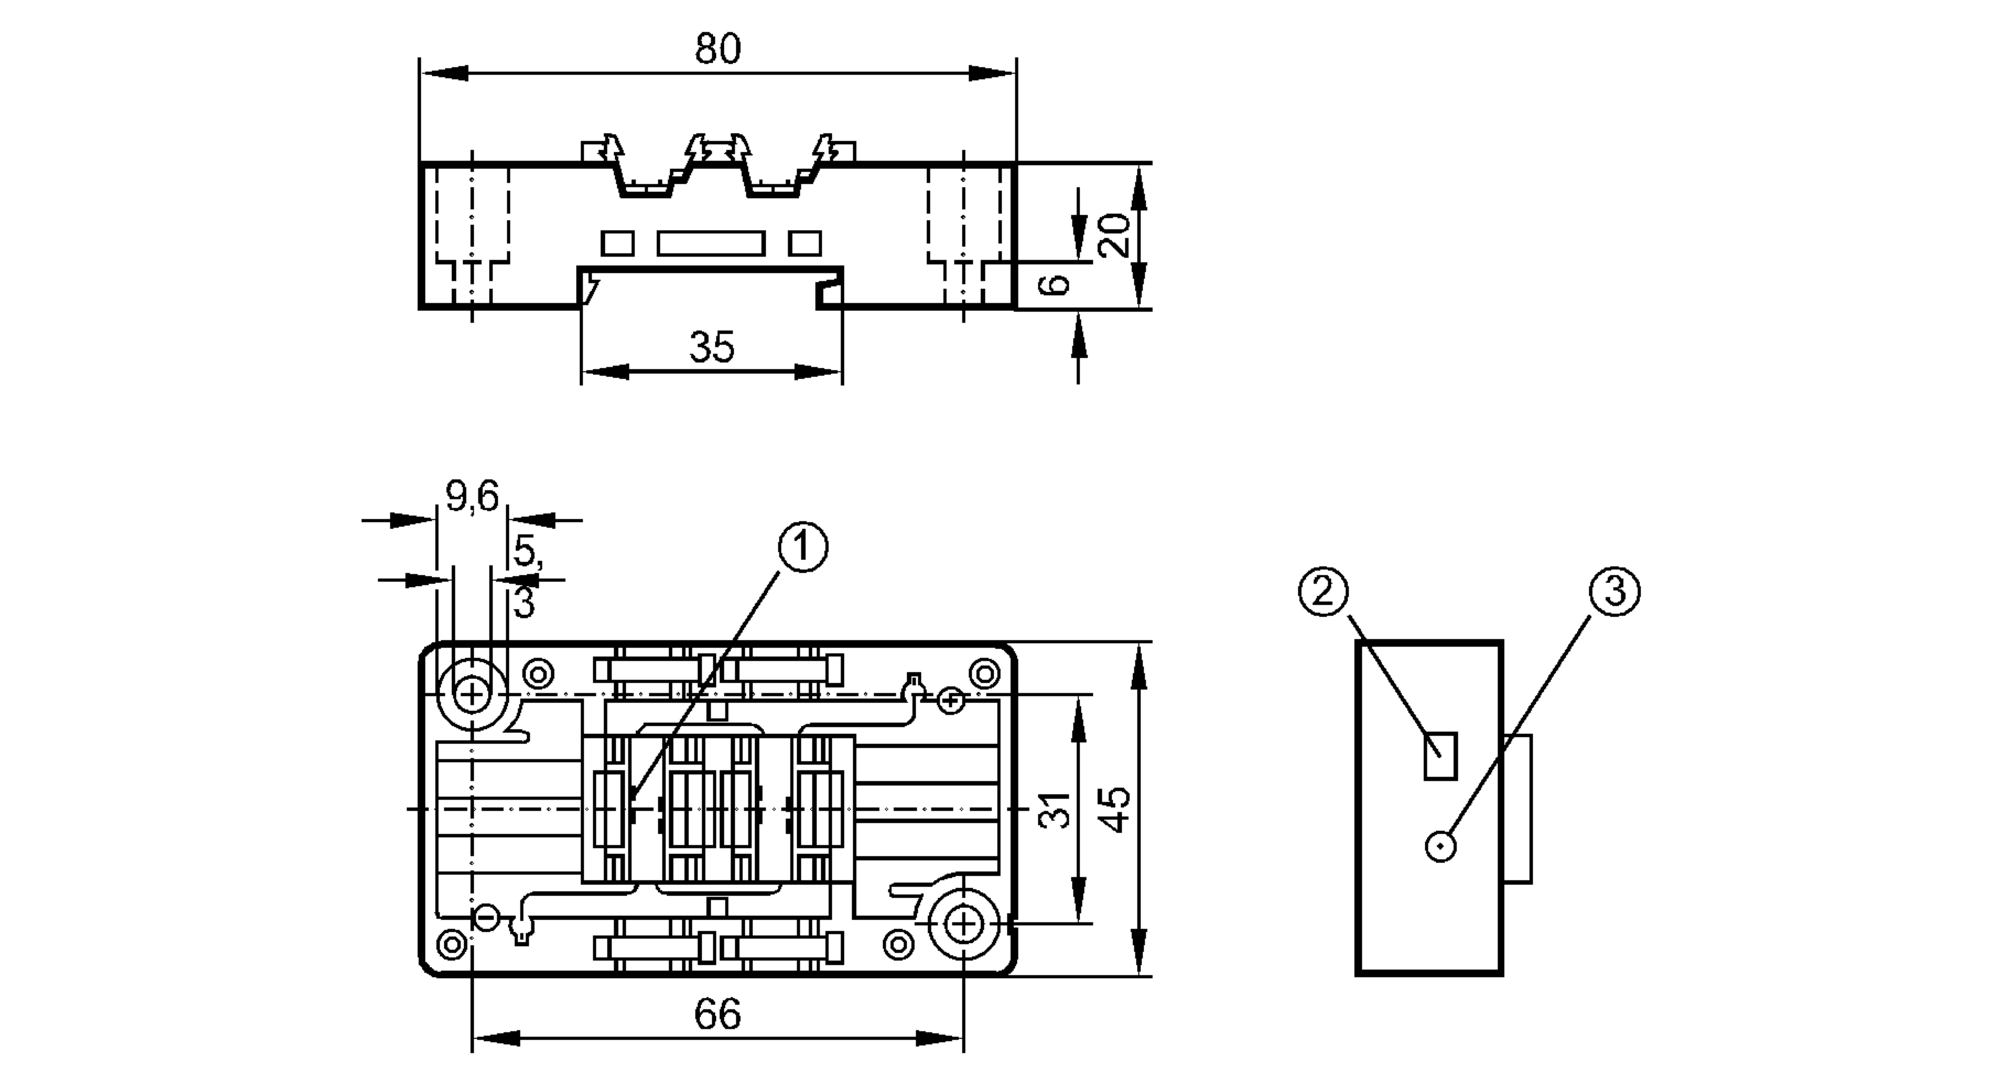 ac5010 - lower part for as-interface module